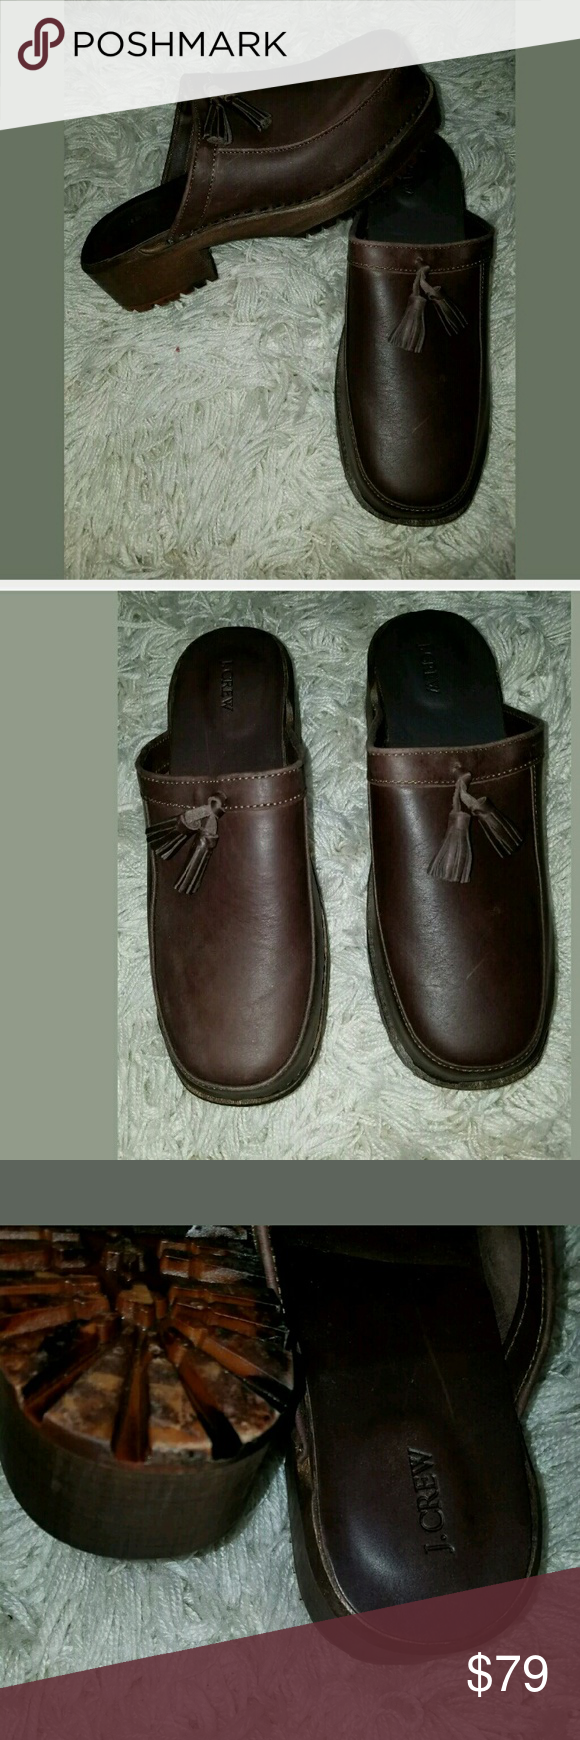 NWOB RARE J.Crew Leather Wooden Sole Clog Shoes J.Crew Tassel Leather Wooden Sole Clog Shoes Brown 10M/ 41 Gorgeous, shoes. Made in Italy.  2 inch heel.  .75 inch platform.    AB J. Crew Shoes Mules & Clogs